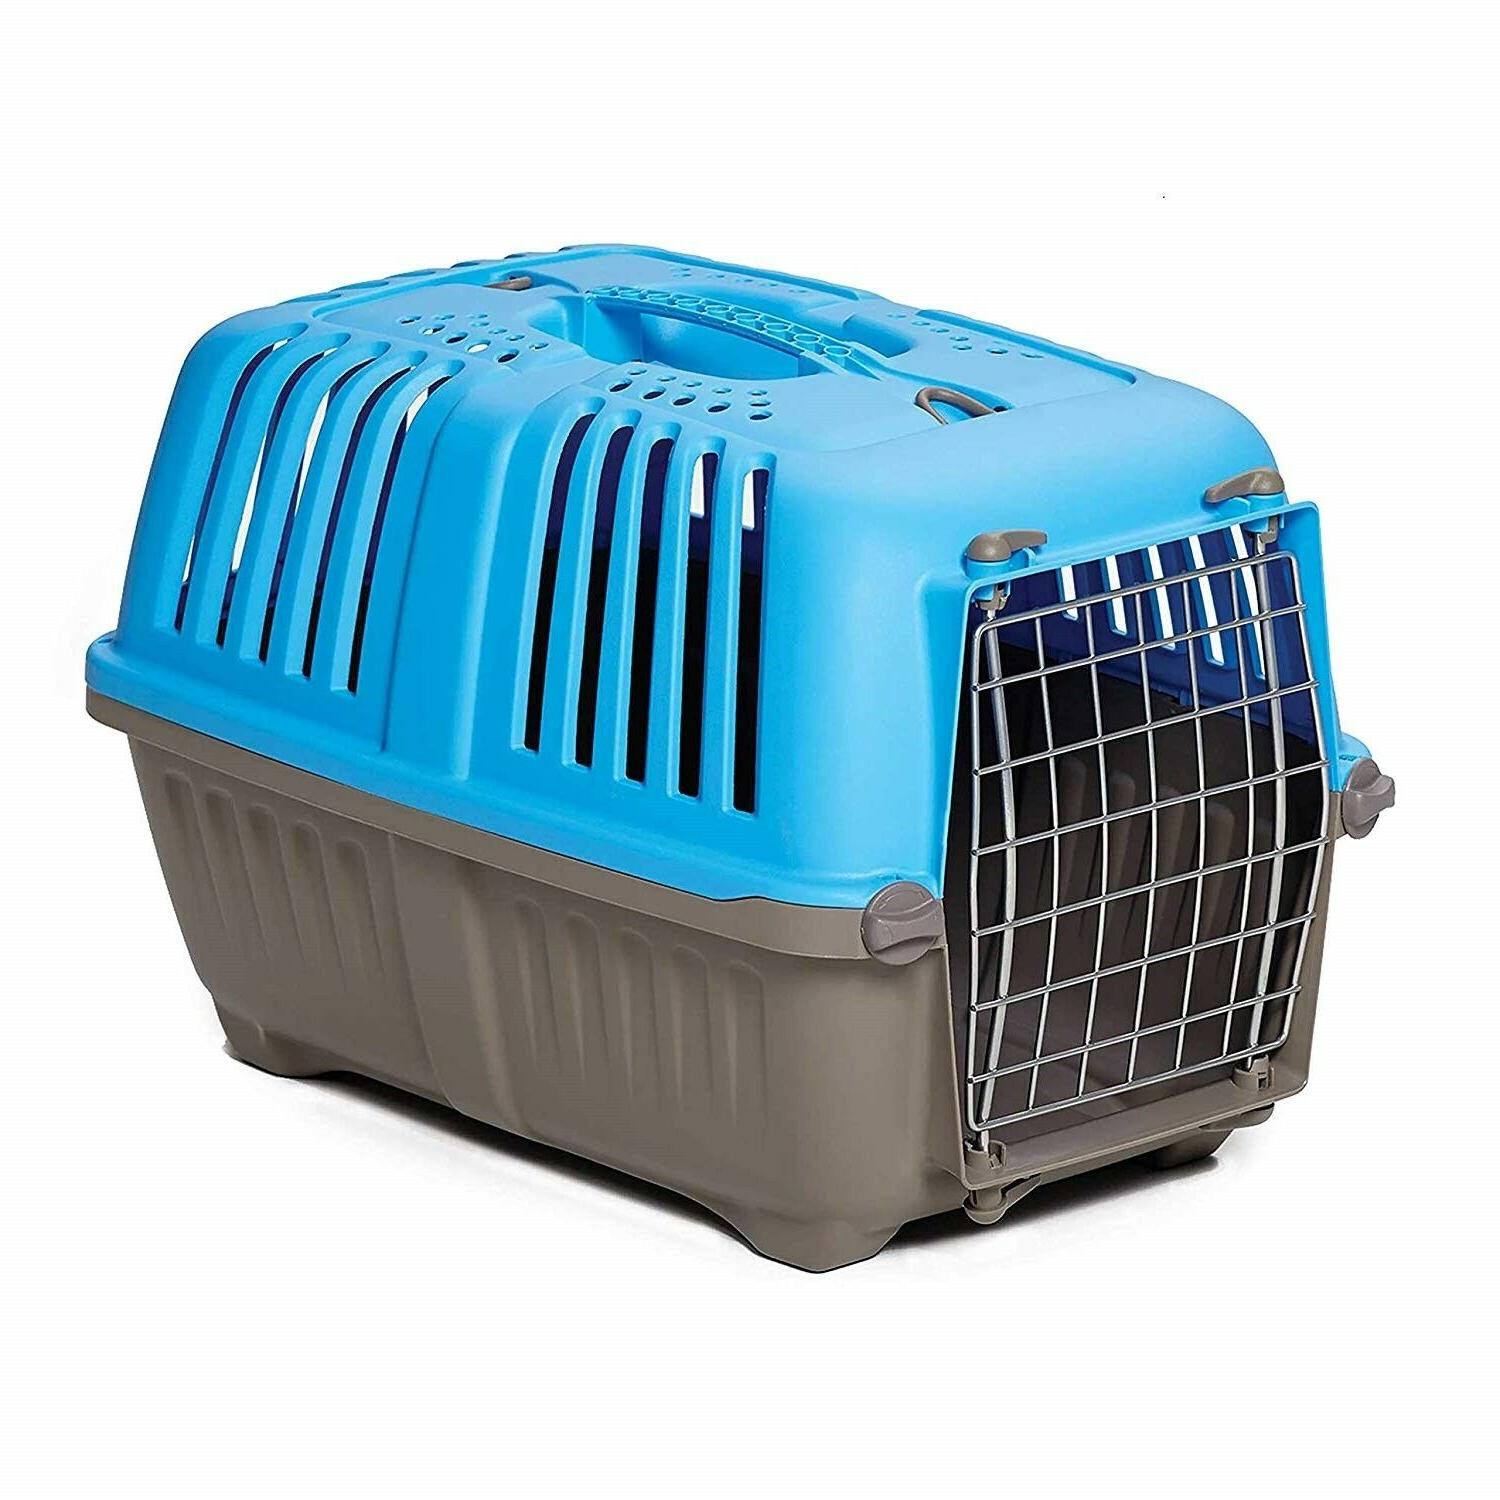 Ess Pet For Dogs Cats Home Or Traveling Carrying 19 Inch Hard Fun